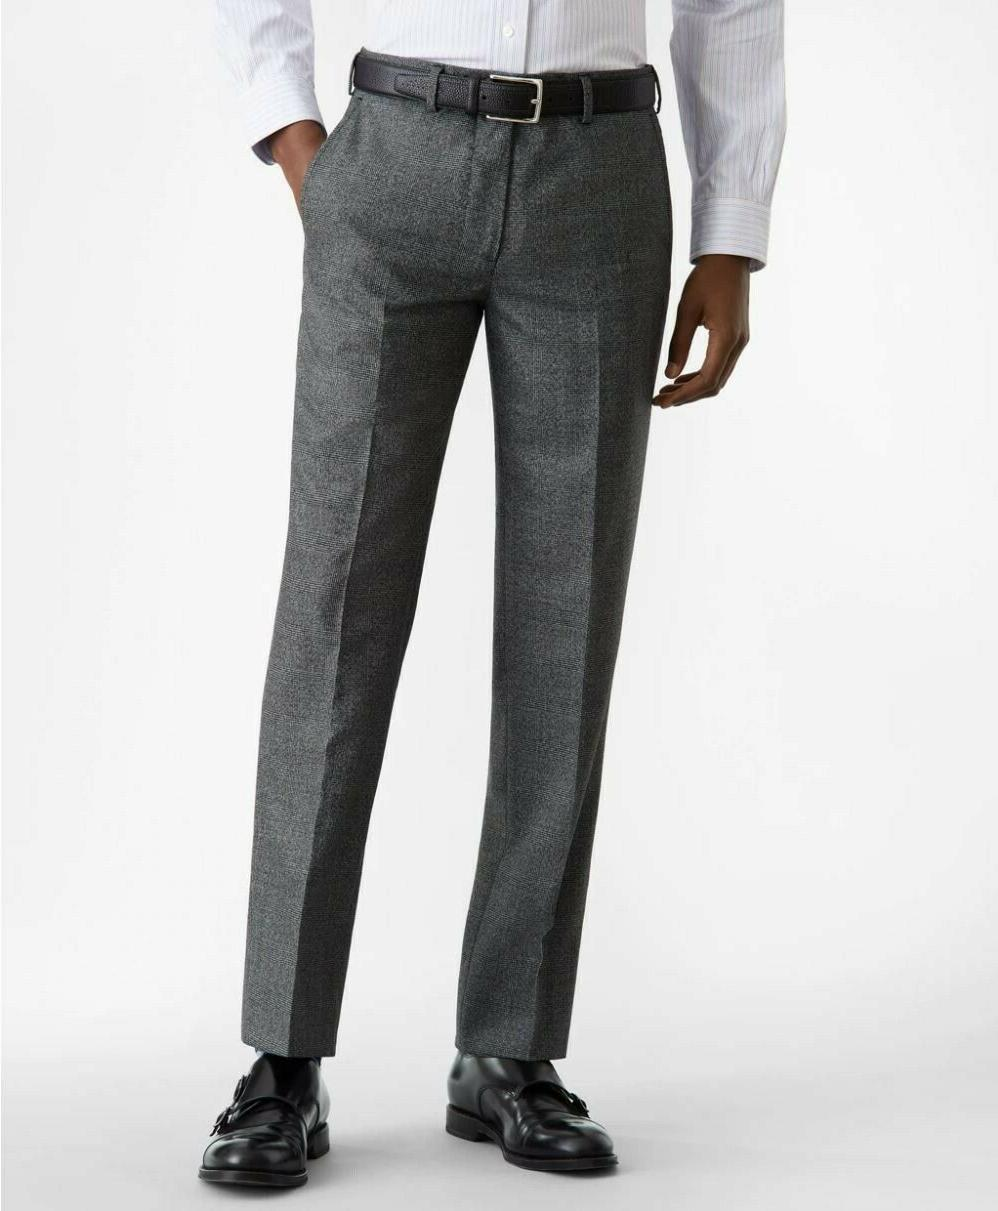 Brooks Brothers 2-button Fit Glen Suit, w Tag